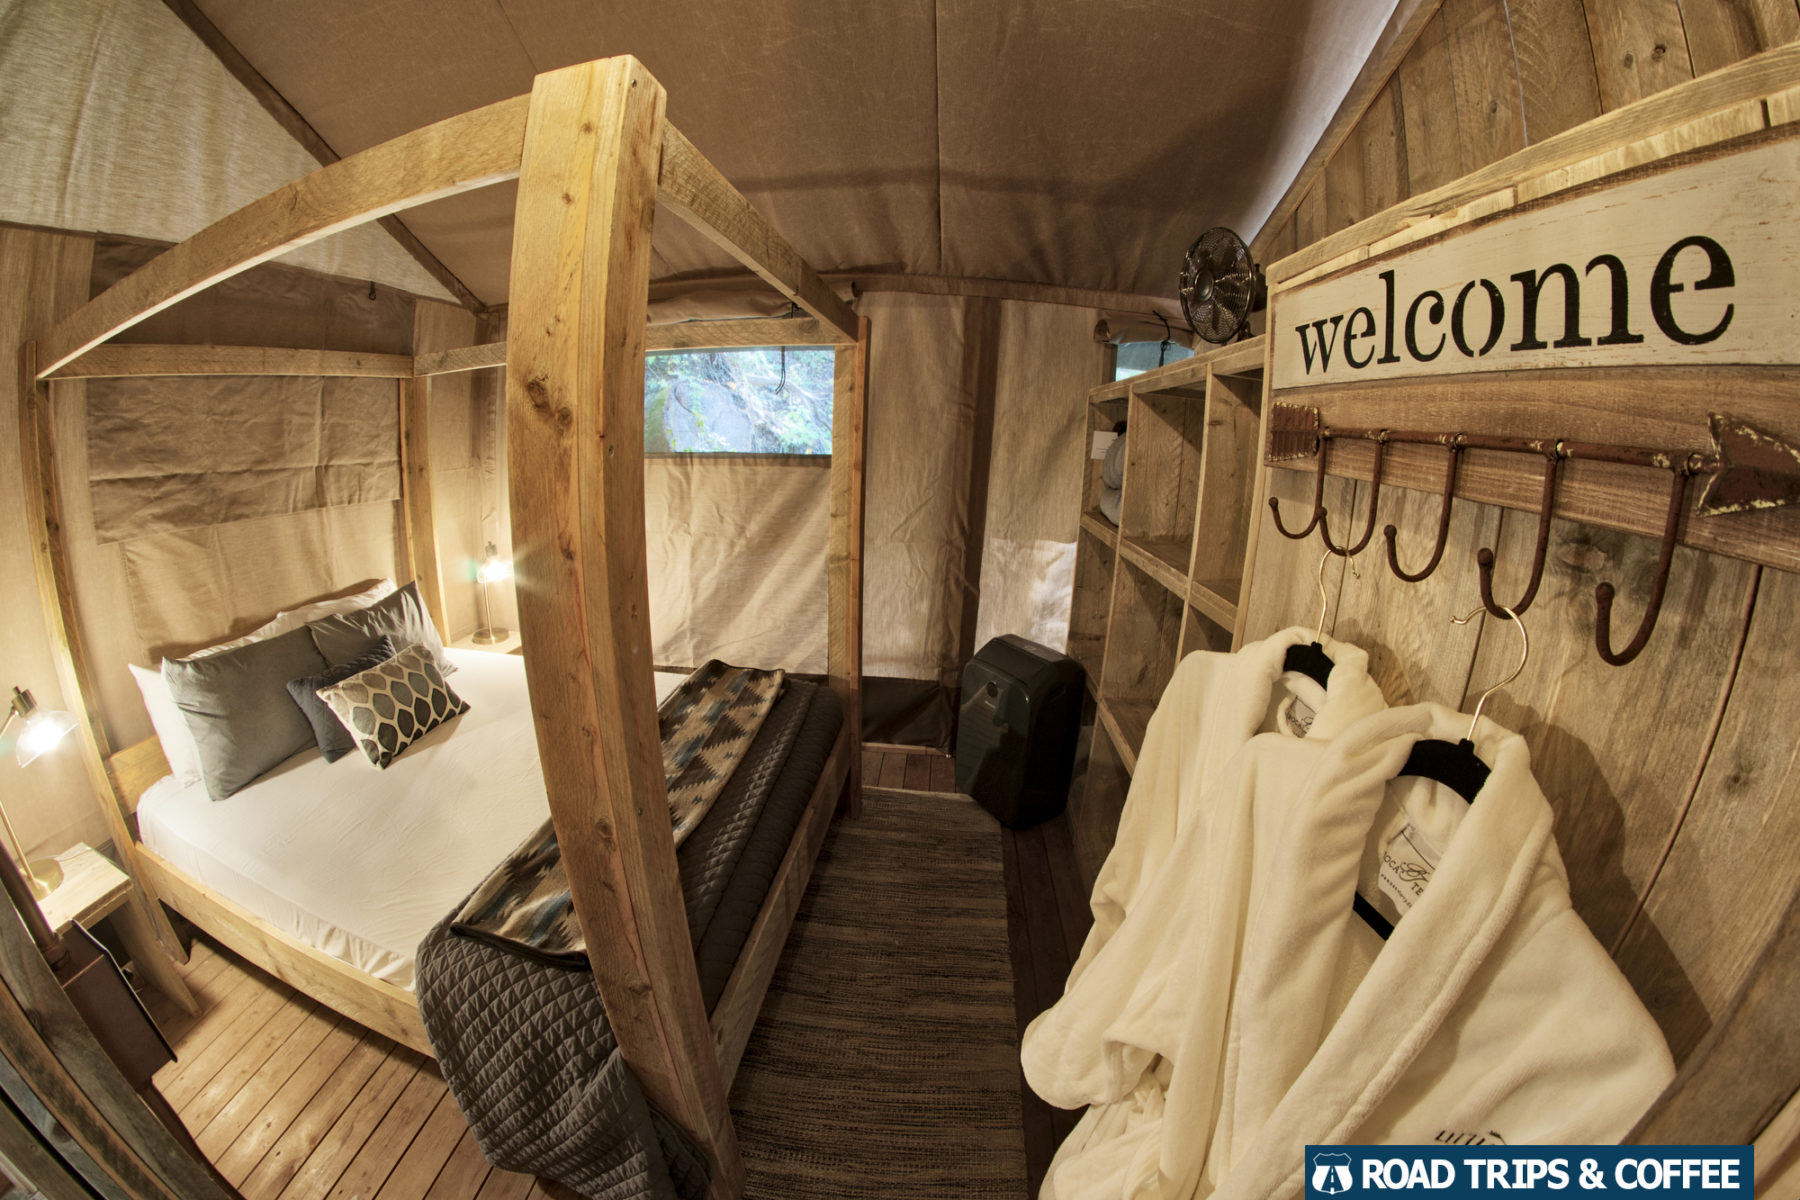 A small master bedroom with comfortable robes hanging from hooks inside a glamping tent at Little Arrow Outdoor Resort in Townsend, Tennessee